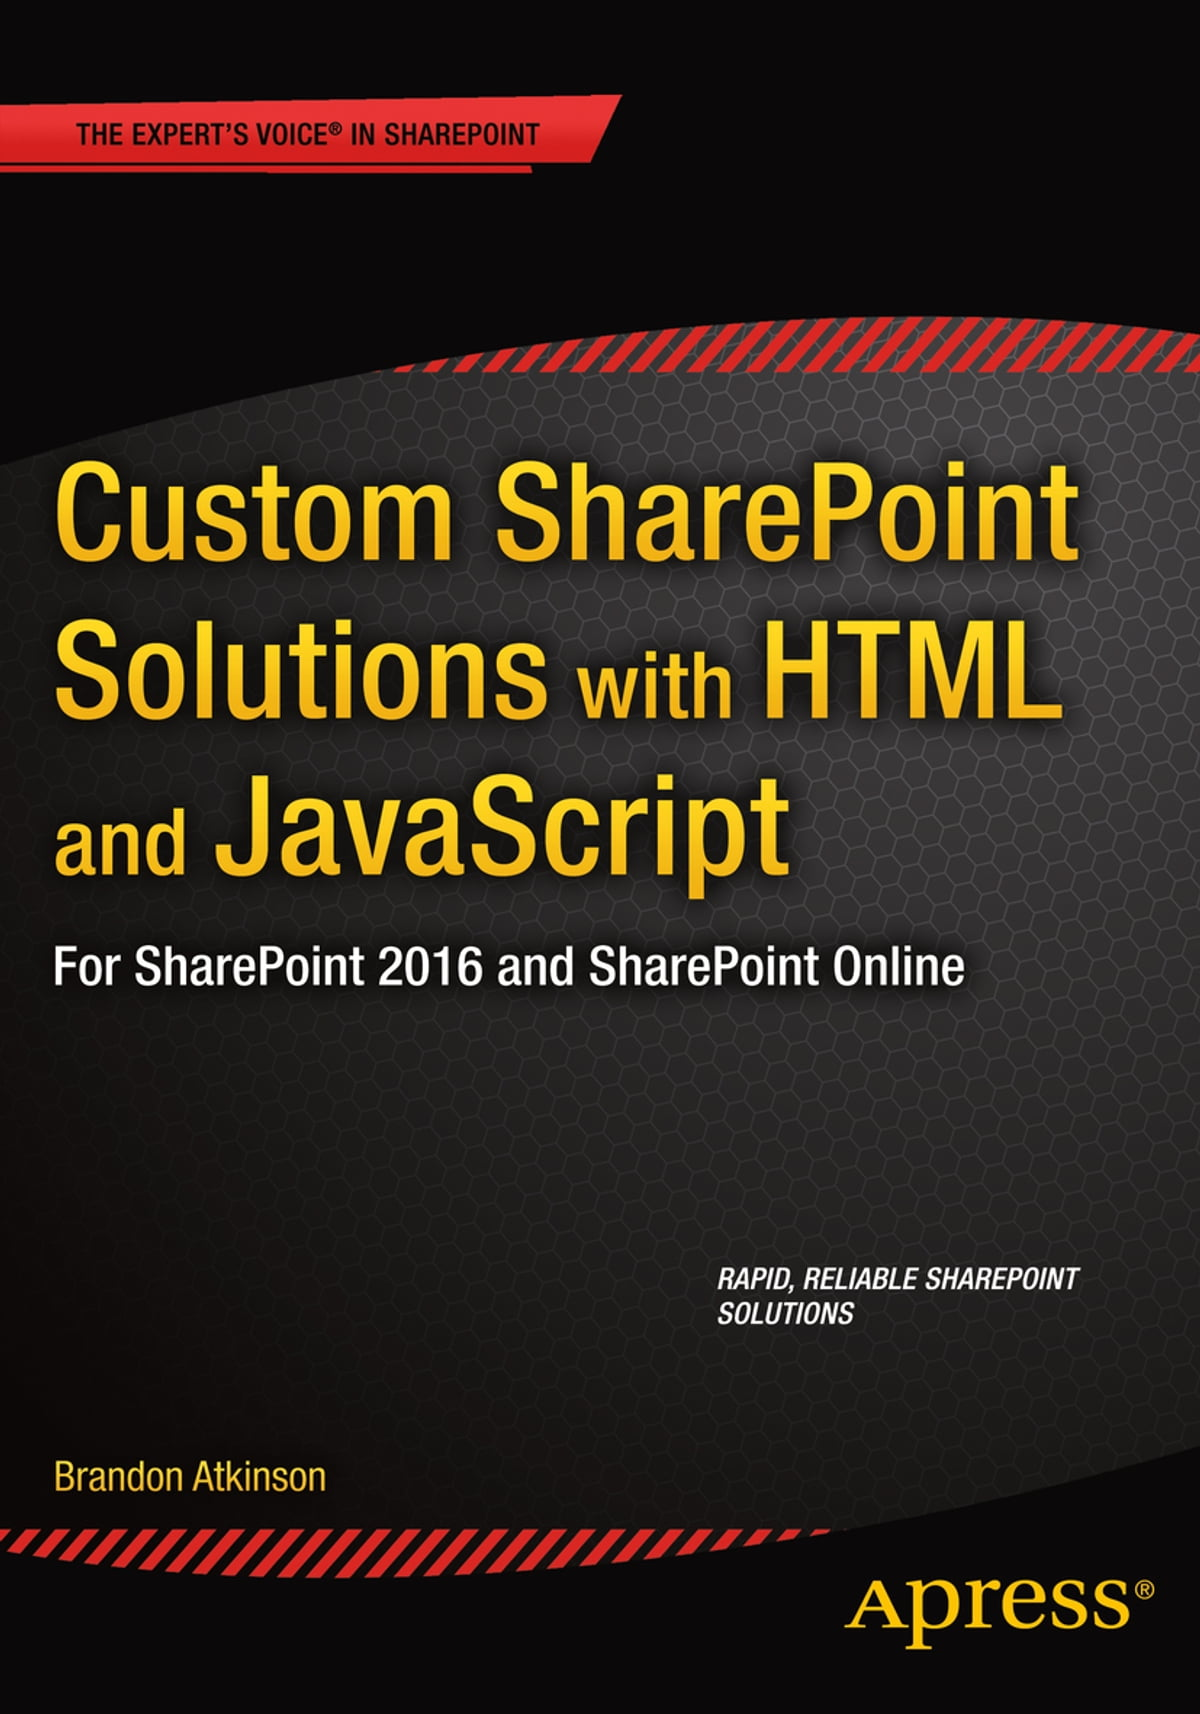 Html5 Javascript And Jquery 24-hour Trainer Pdf